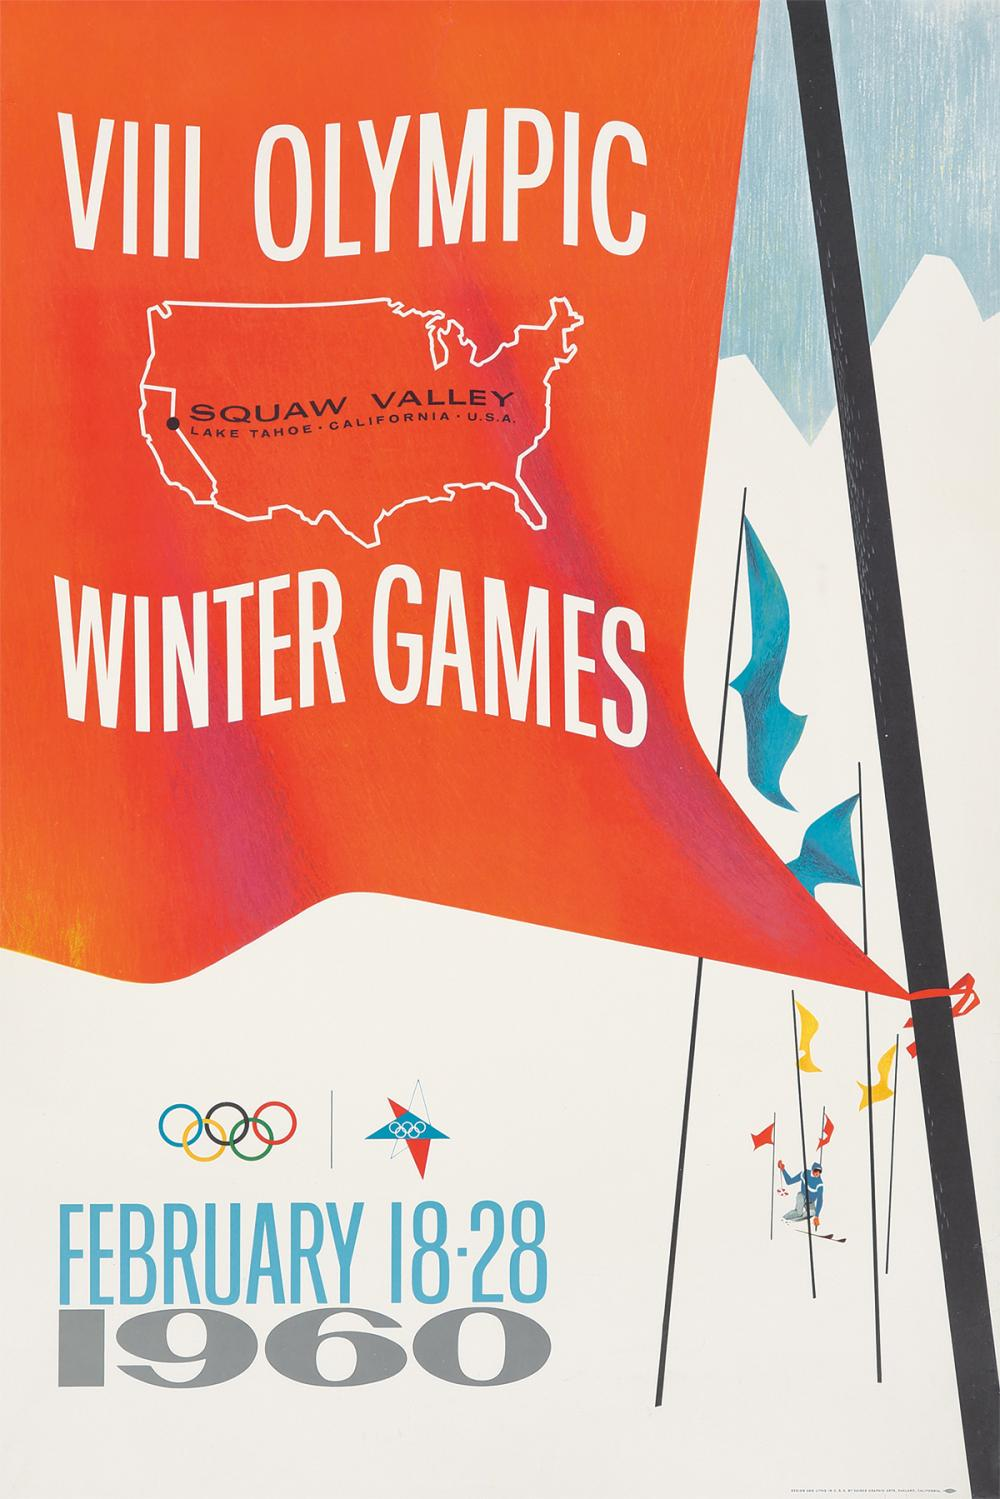 Squaw Valley 1960 Winter Olympics. 1959.